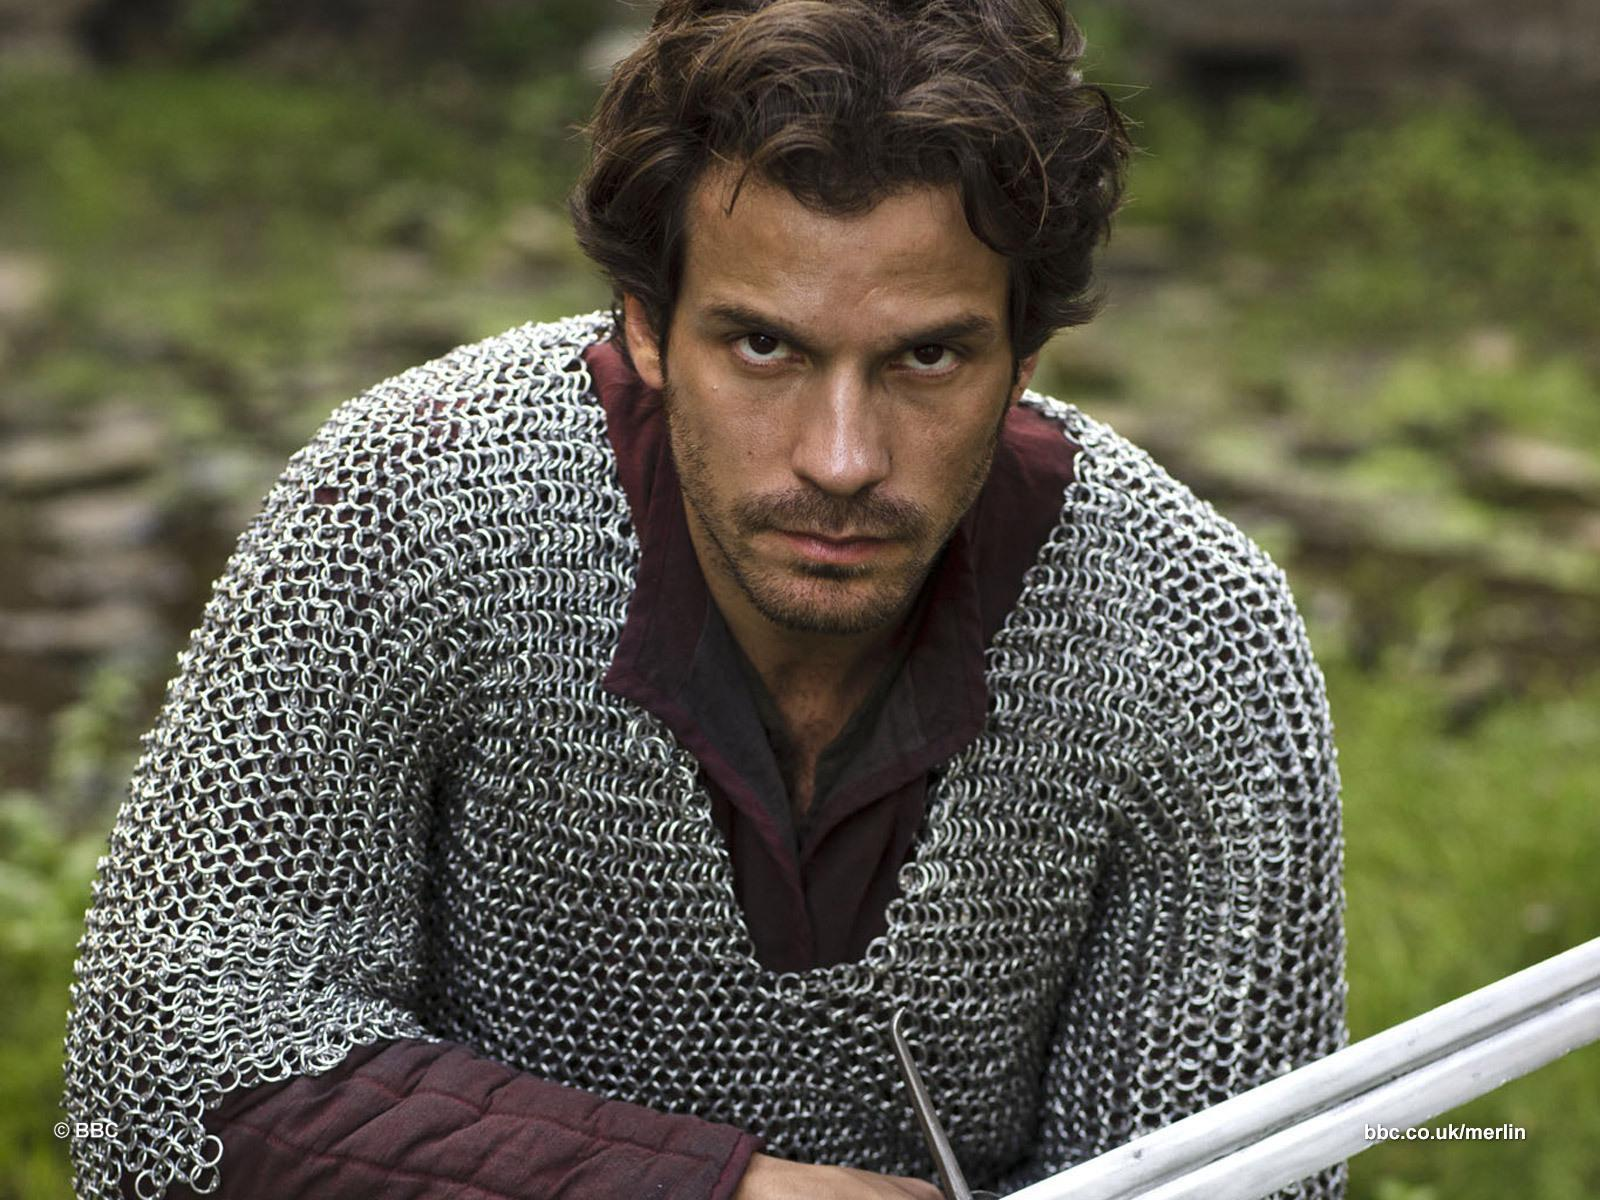 What is Lancelot's full name?